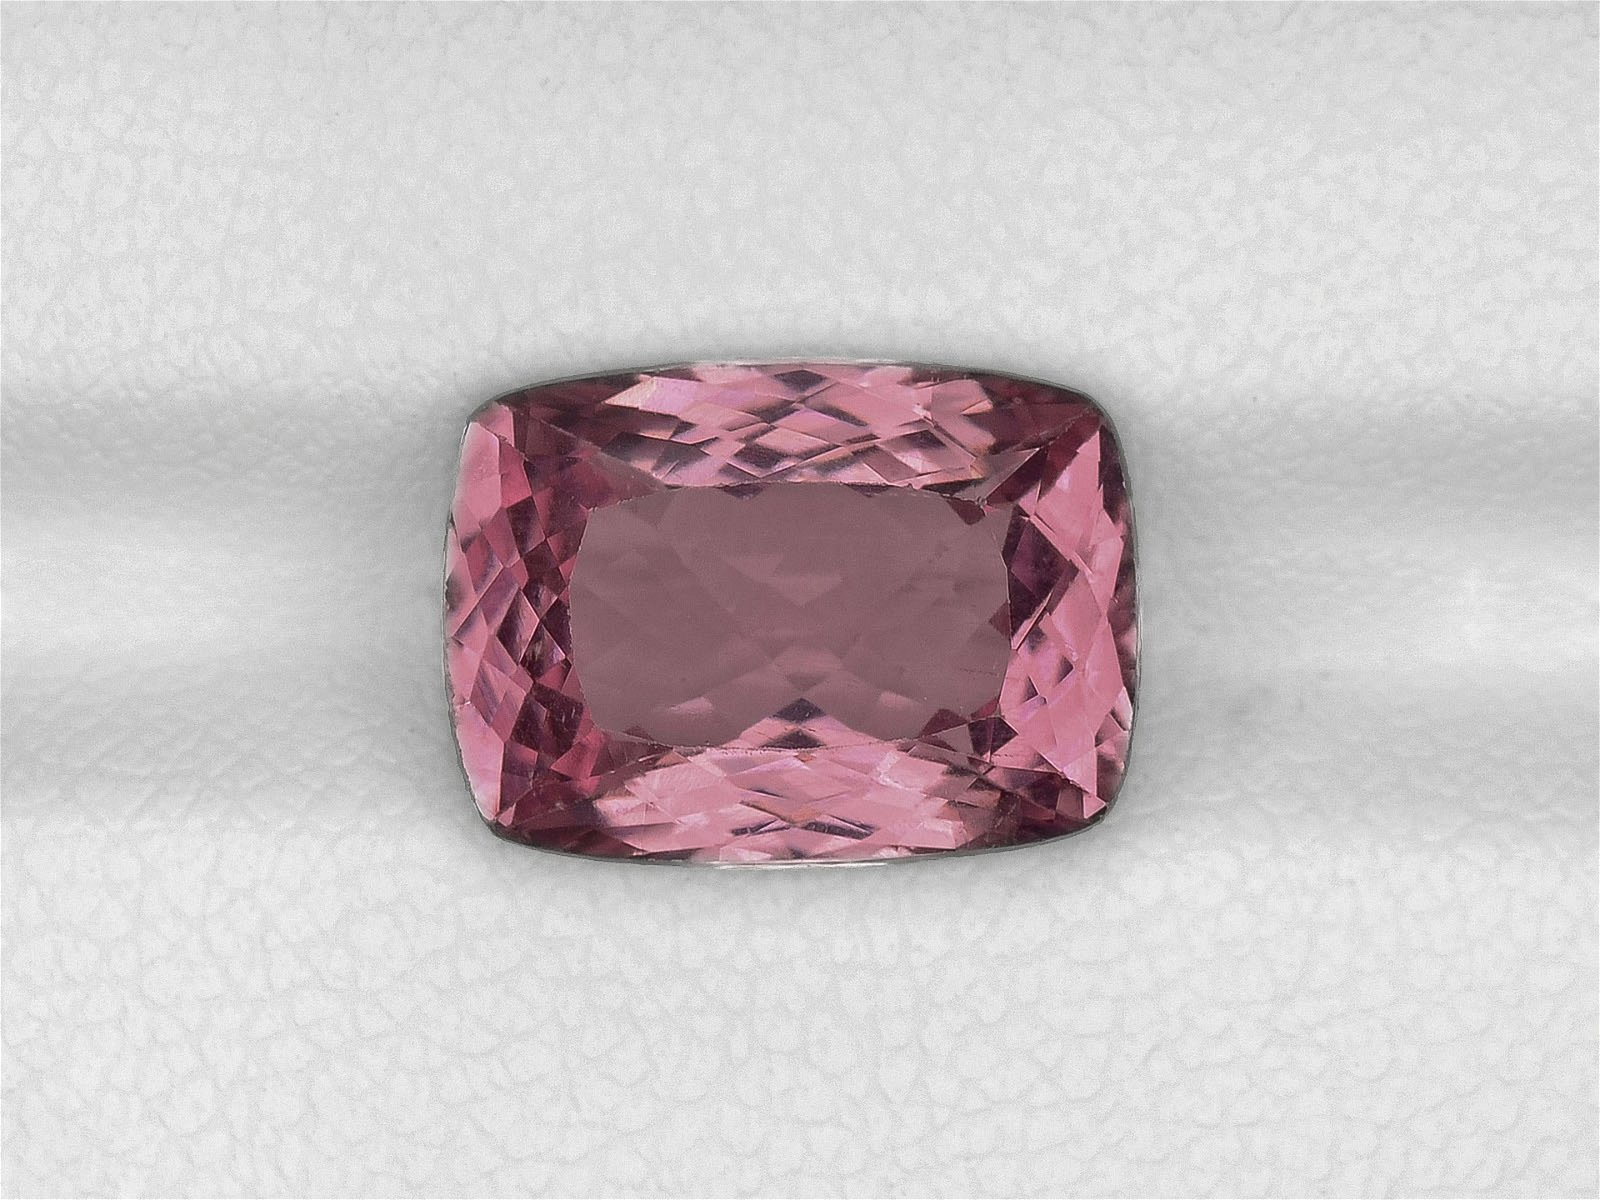 Spinel, 5.19ct, Mined in Sri Lanka, Certified by IGI